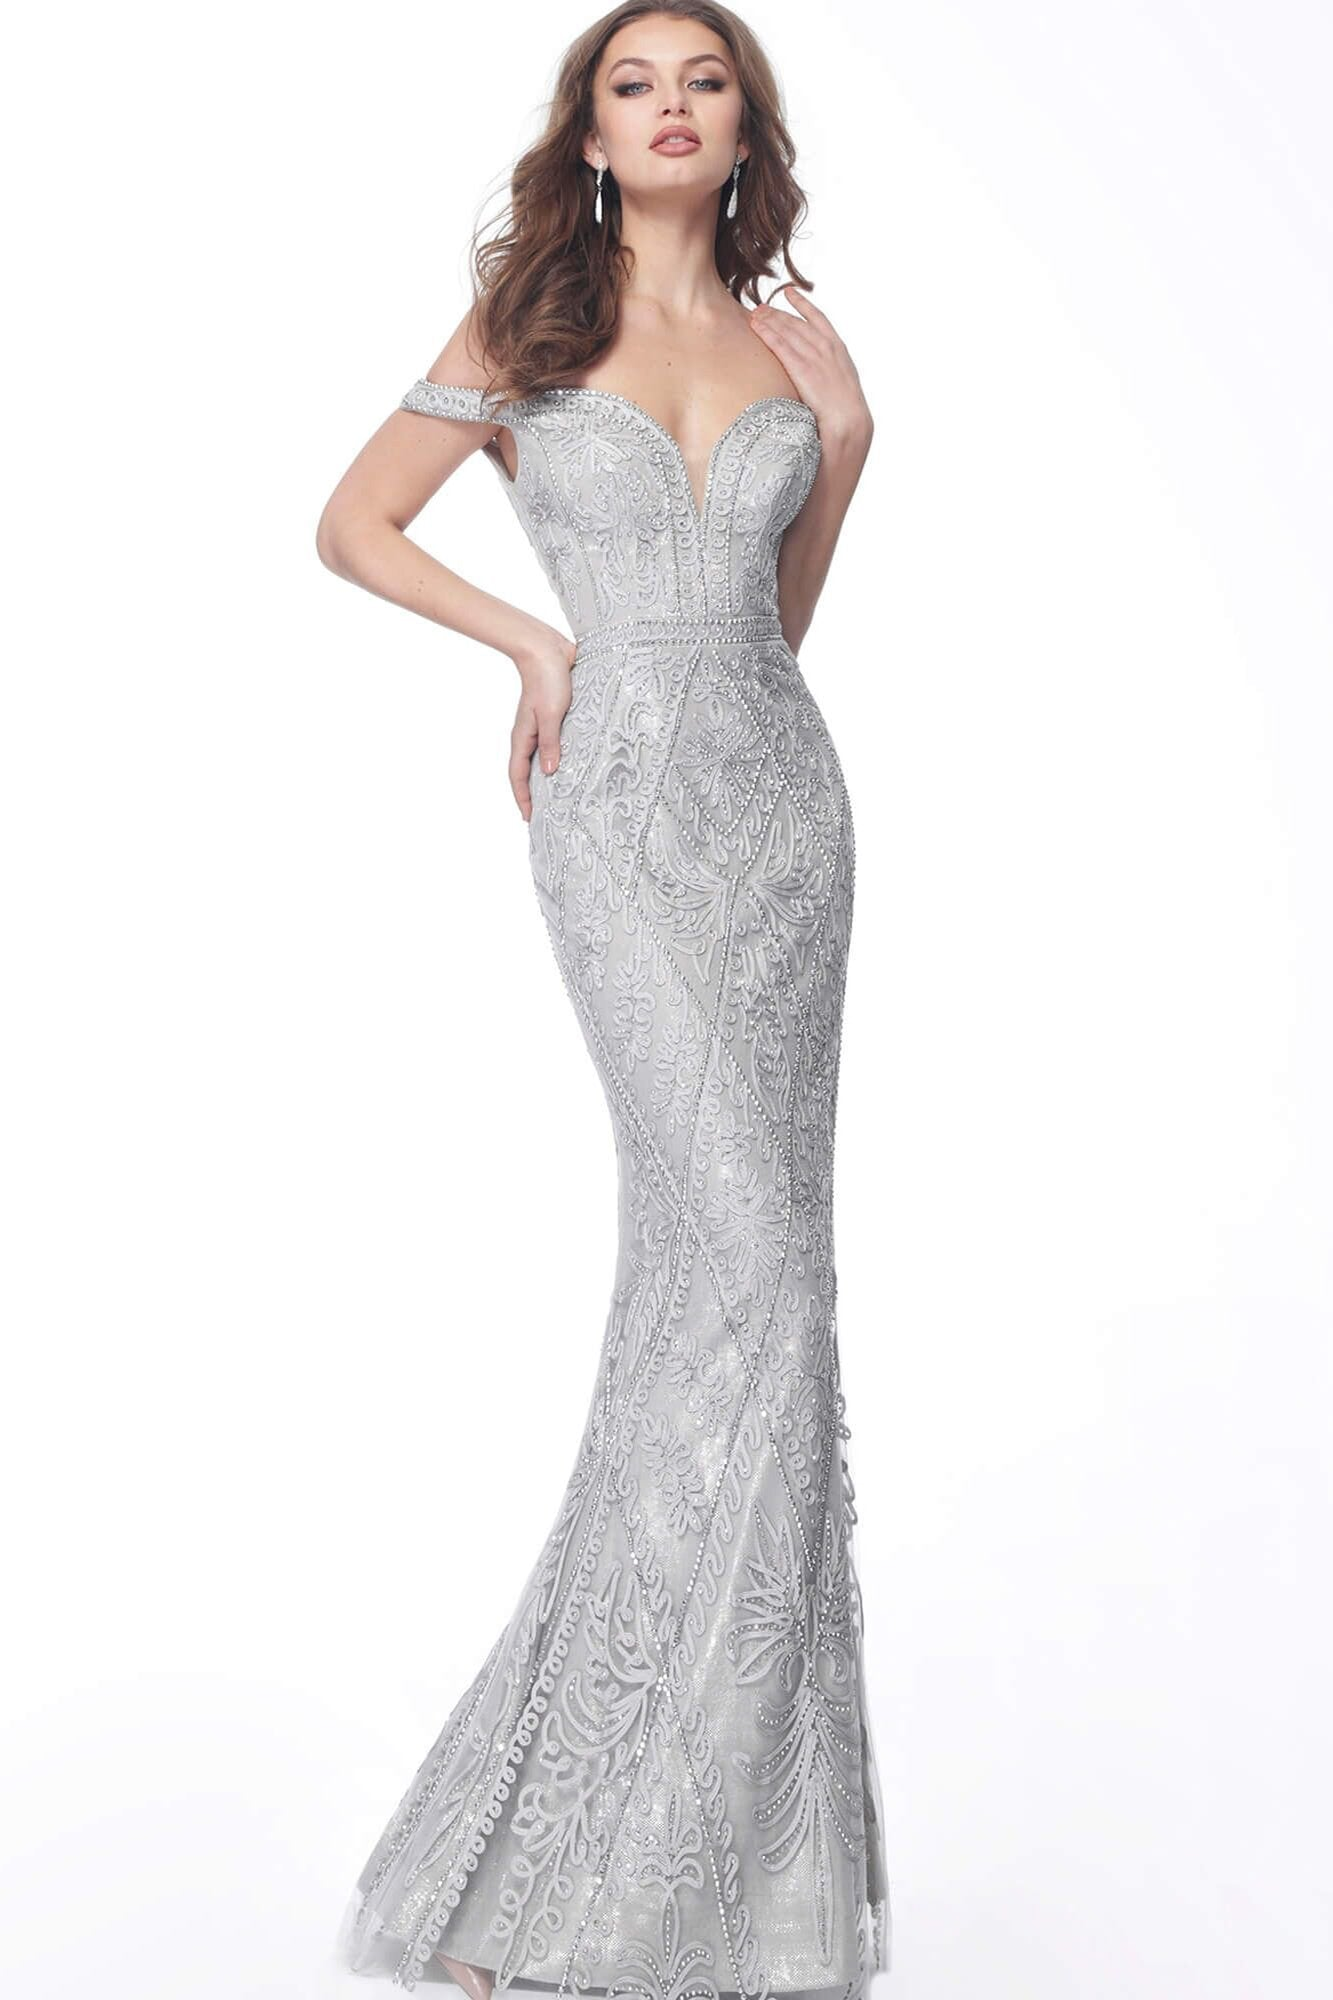 Jovani - Embroidery-Ornate Deep Off-Shoulder Trumpet Dress 68130SC In Gray and Silver